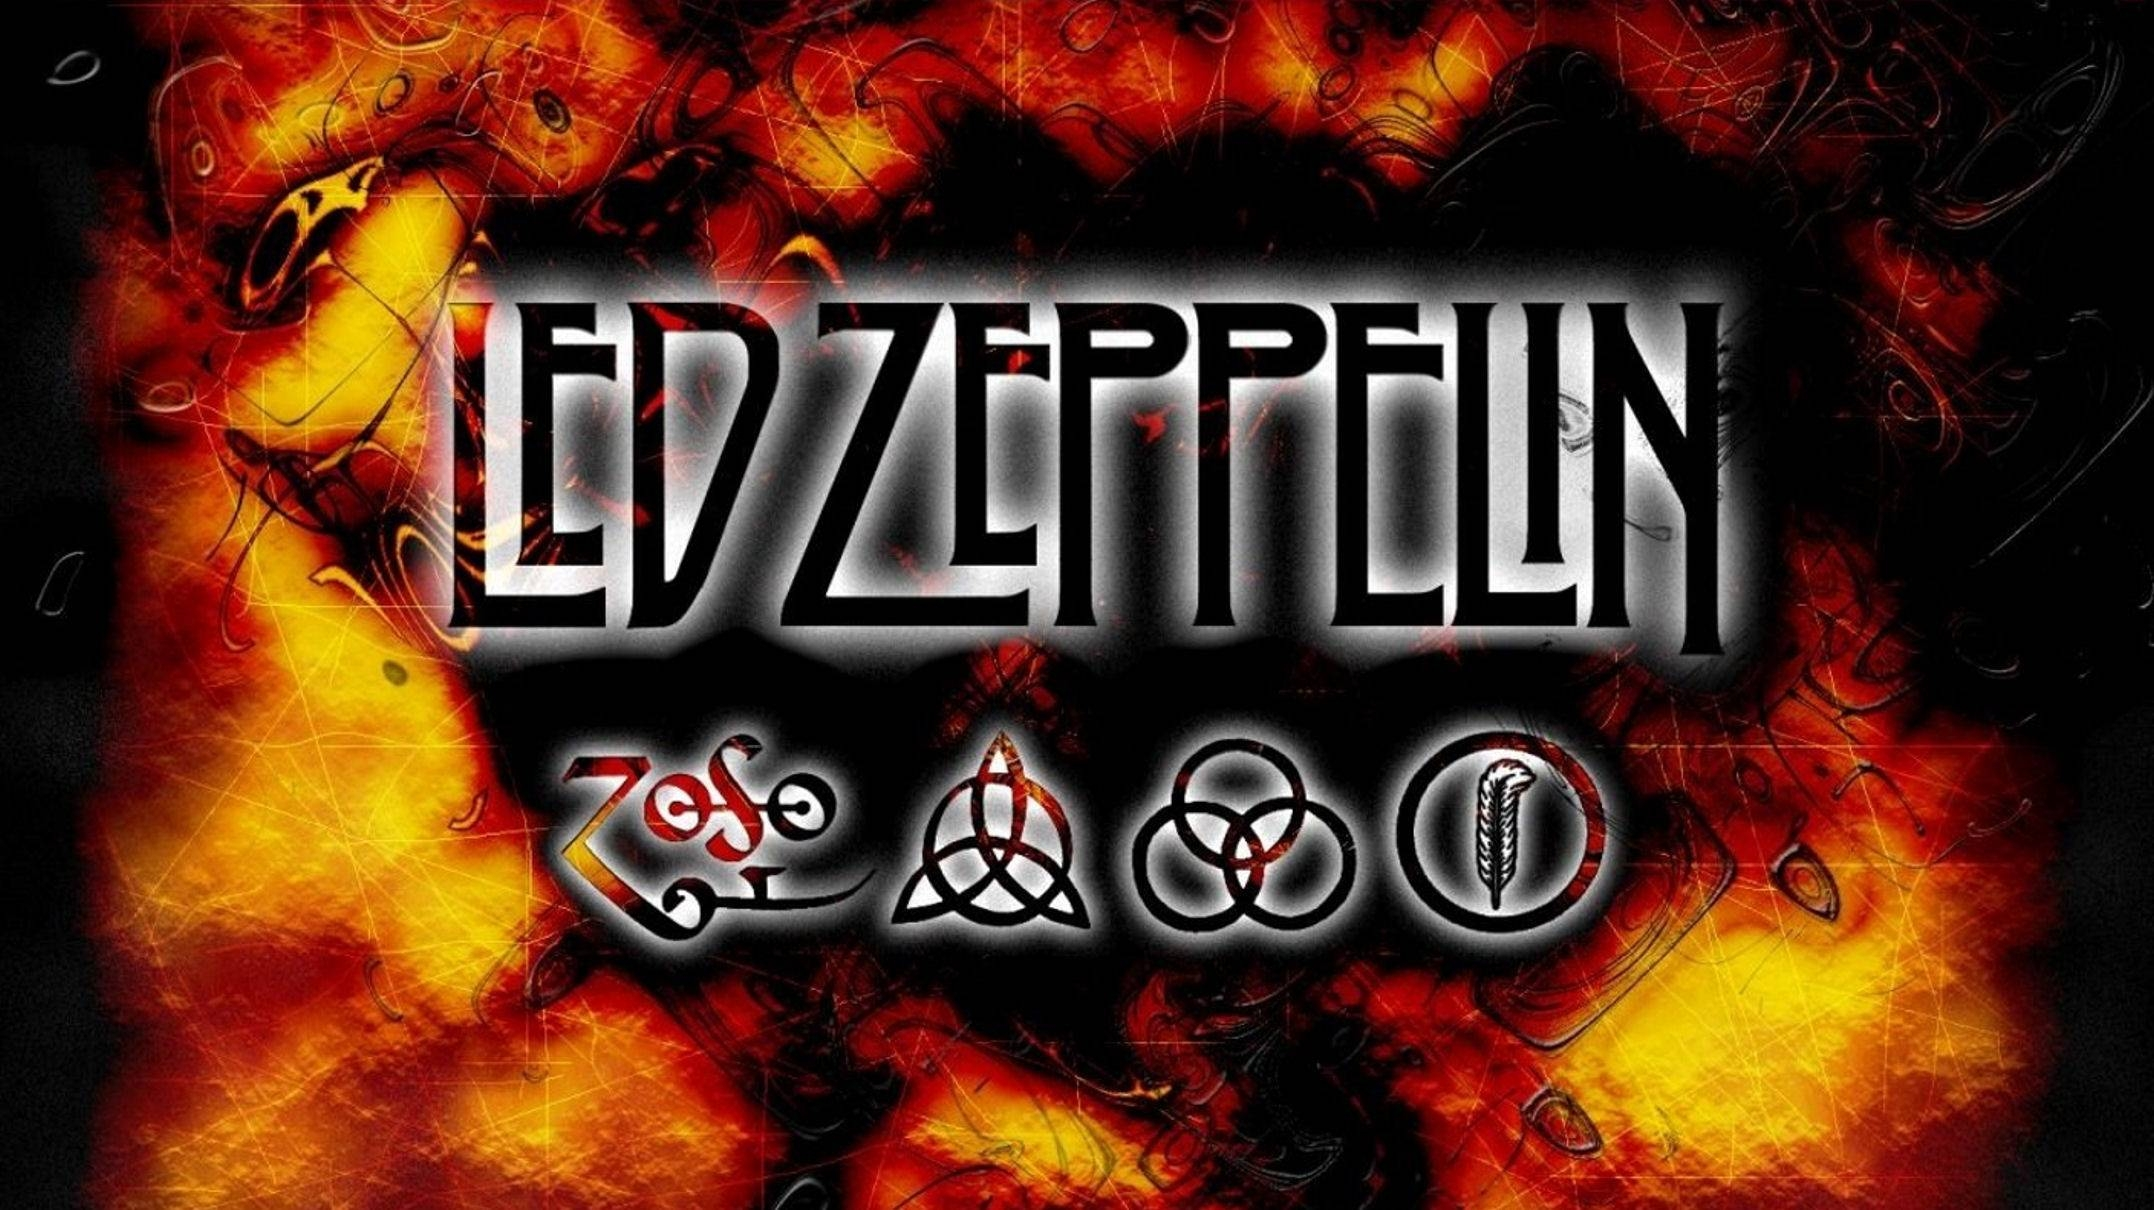 48 Led Zeppelin Hd Wallpapers | Backgrounds – Wallpaper Abyss Intended For Best And Newest Led Zeppelin 3D Wall Art (View 4 of 20)